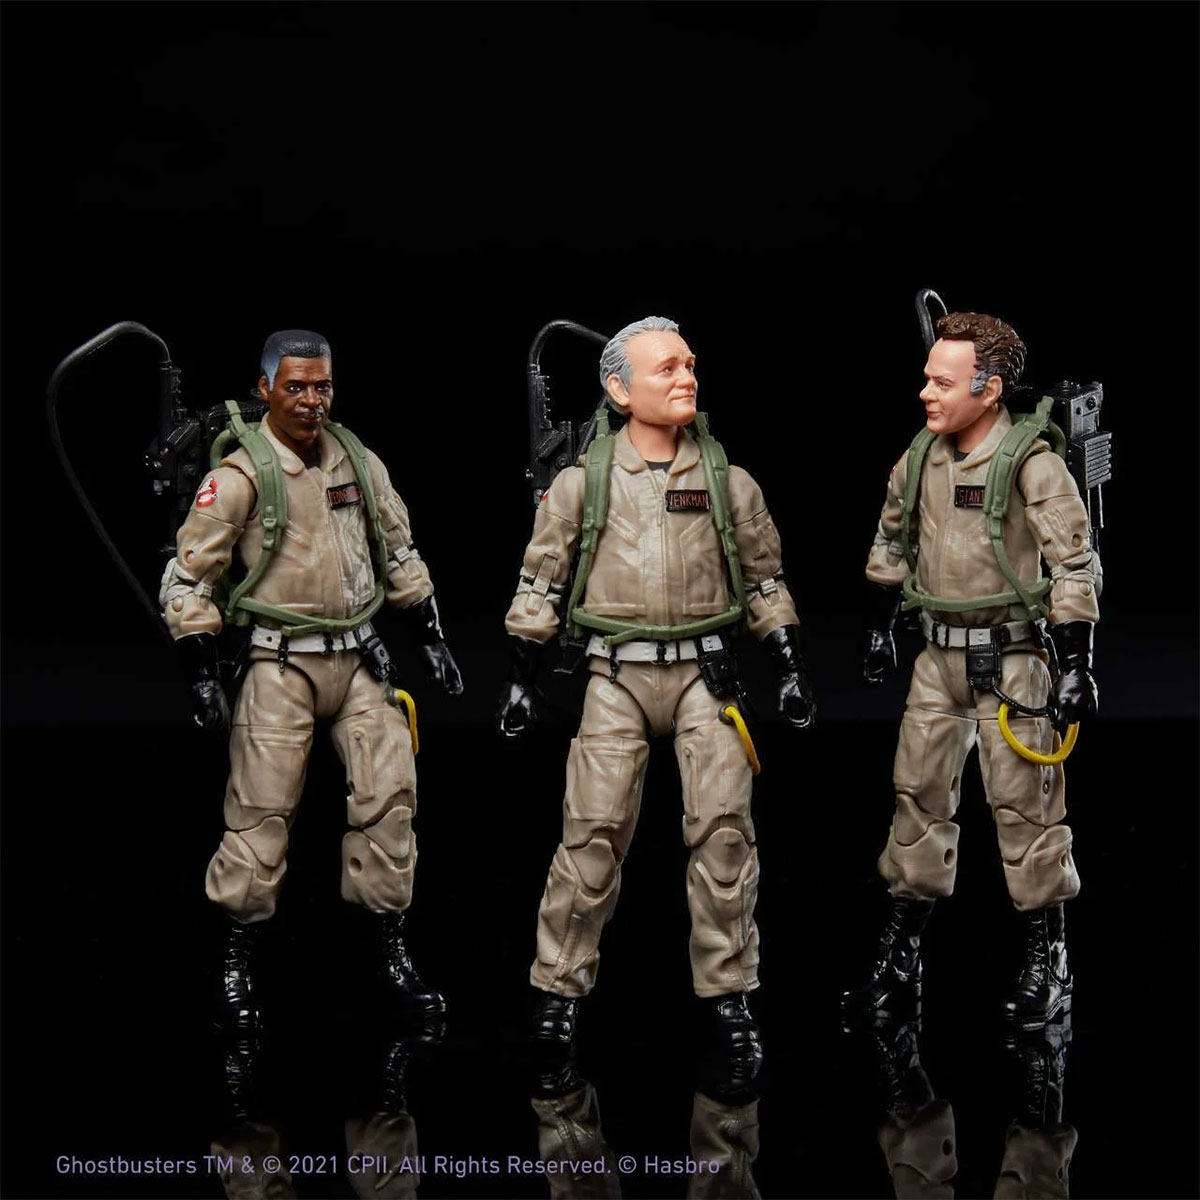 New Hasbro Ghostbusters Toy Collection